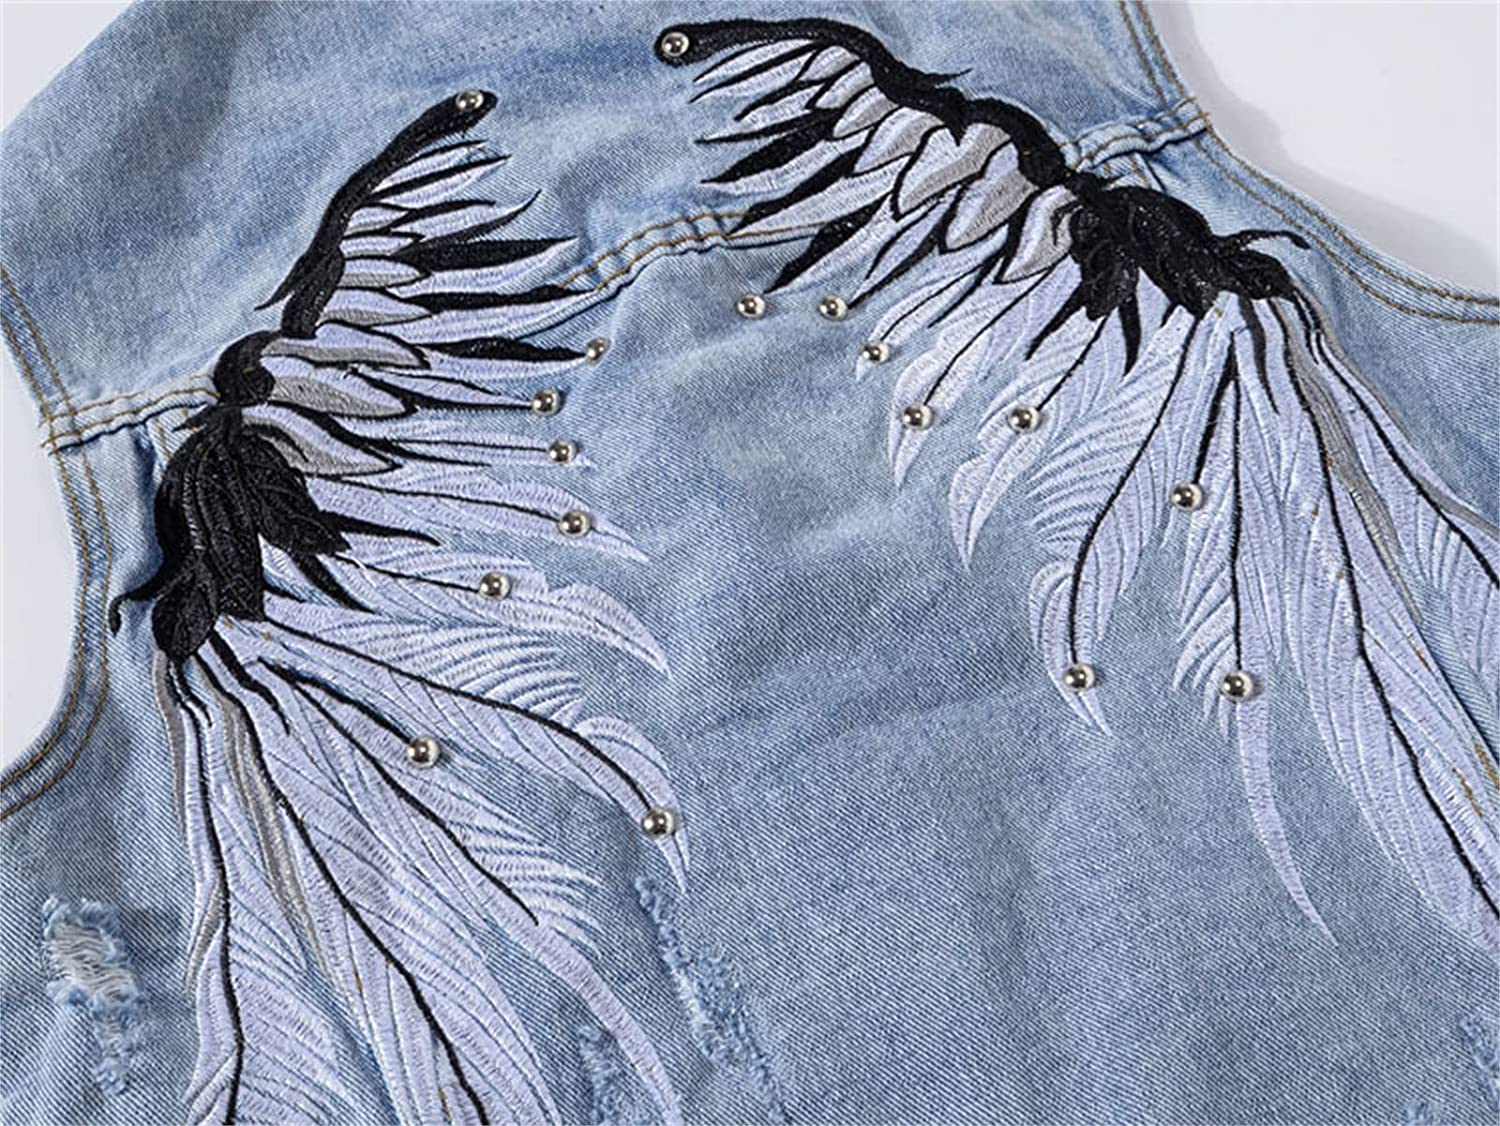 Men's Sleeveless Denim Vest, Embroidered Wings Jeans Ripped Jacket,Destoryed Waistcoat with Studs